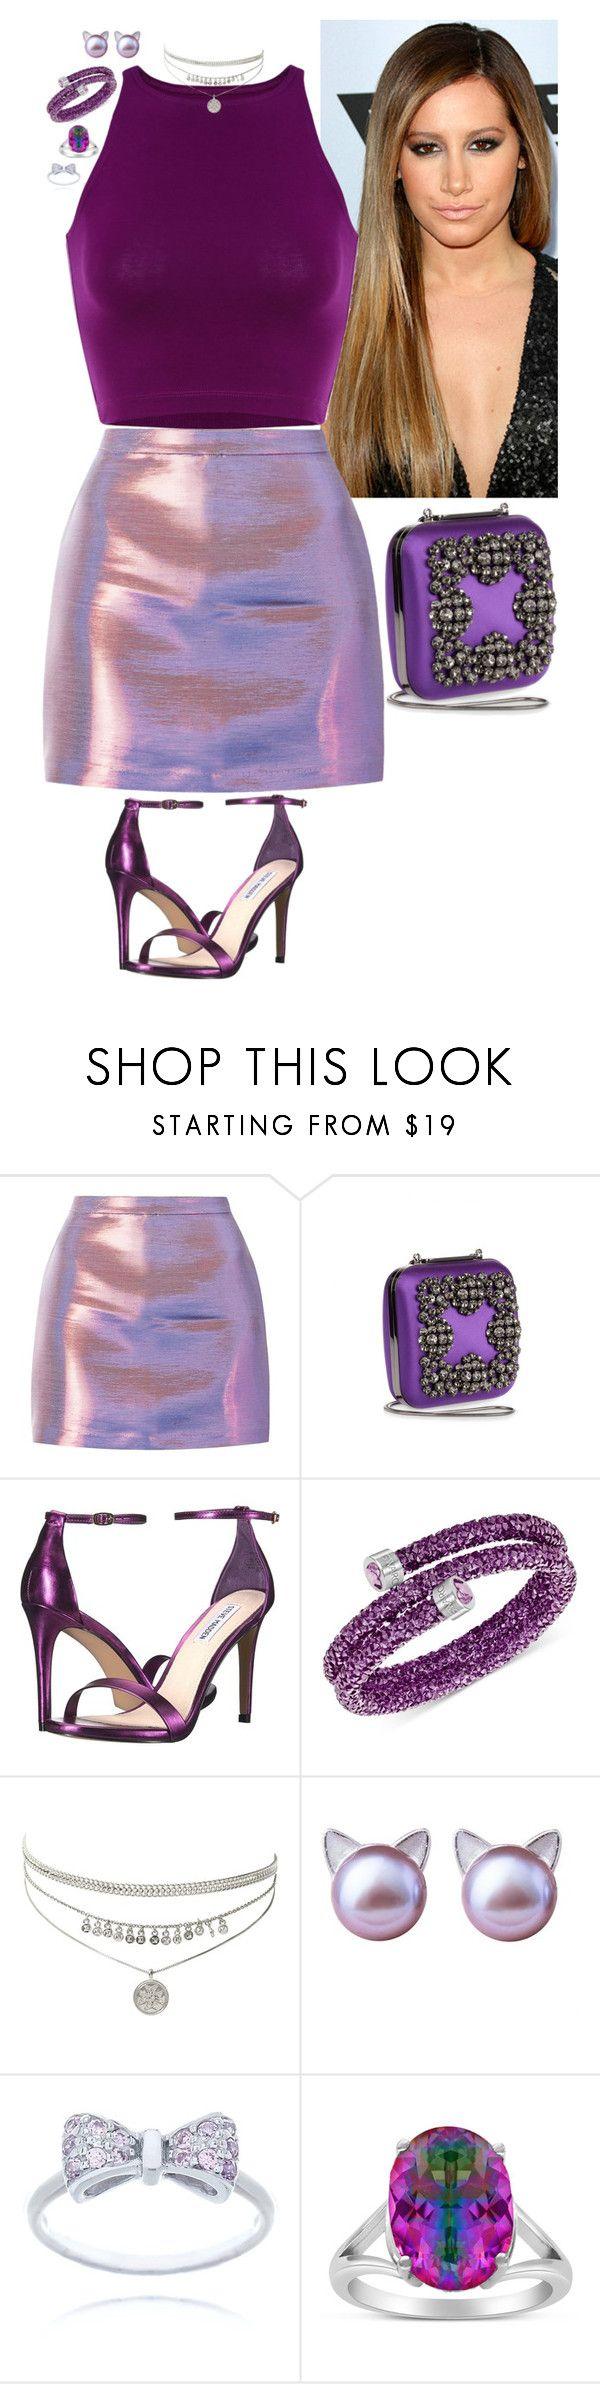 """Curious Cat - Cocktails by Cody"" by stinze on Polyvore featuring Manolo Blahnik, Steve Madden, Swarovski and Rainbow"